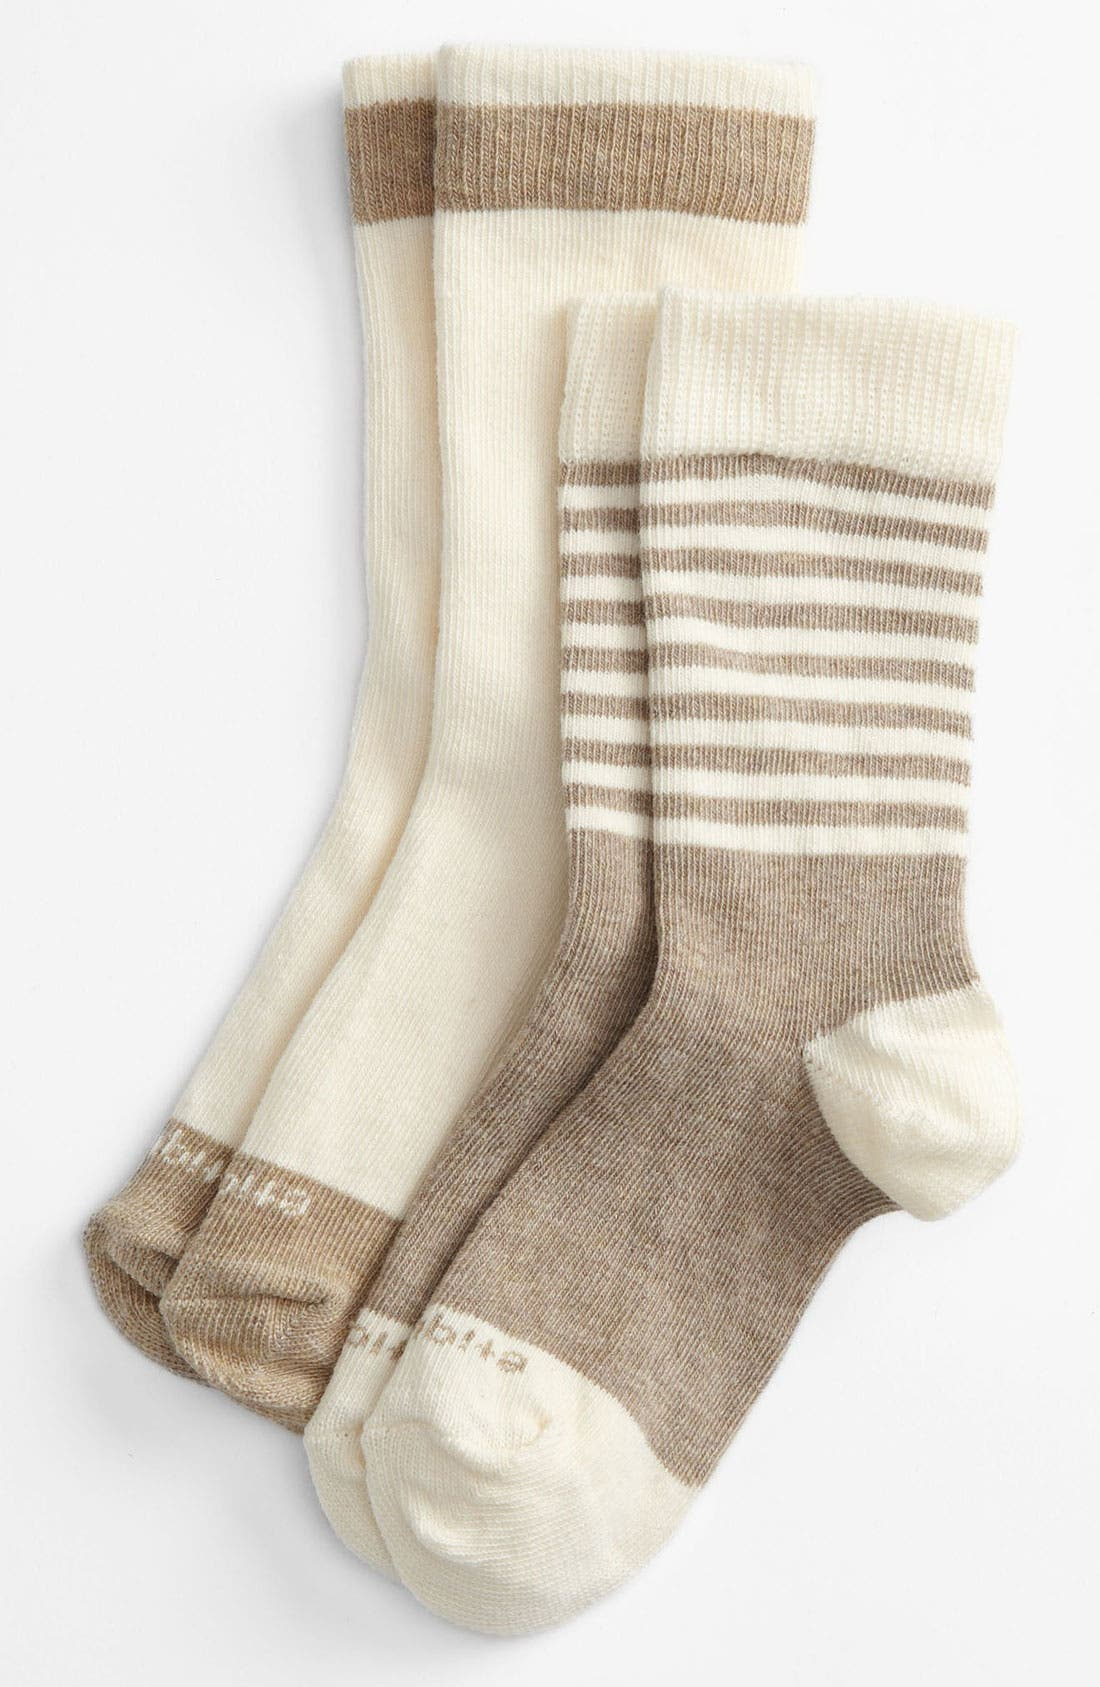 Alternate Image 1 Selected - Etiquette Clothiers 'Preppy Stripe' Socks (2-Pack) (Toddler, Little Kid & Big Kid)